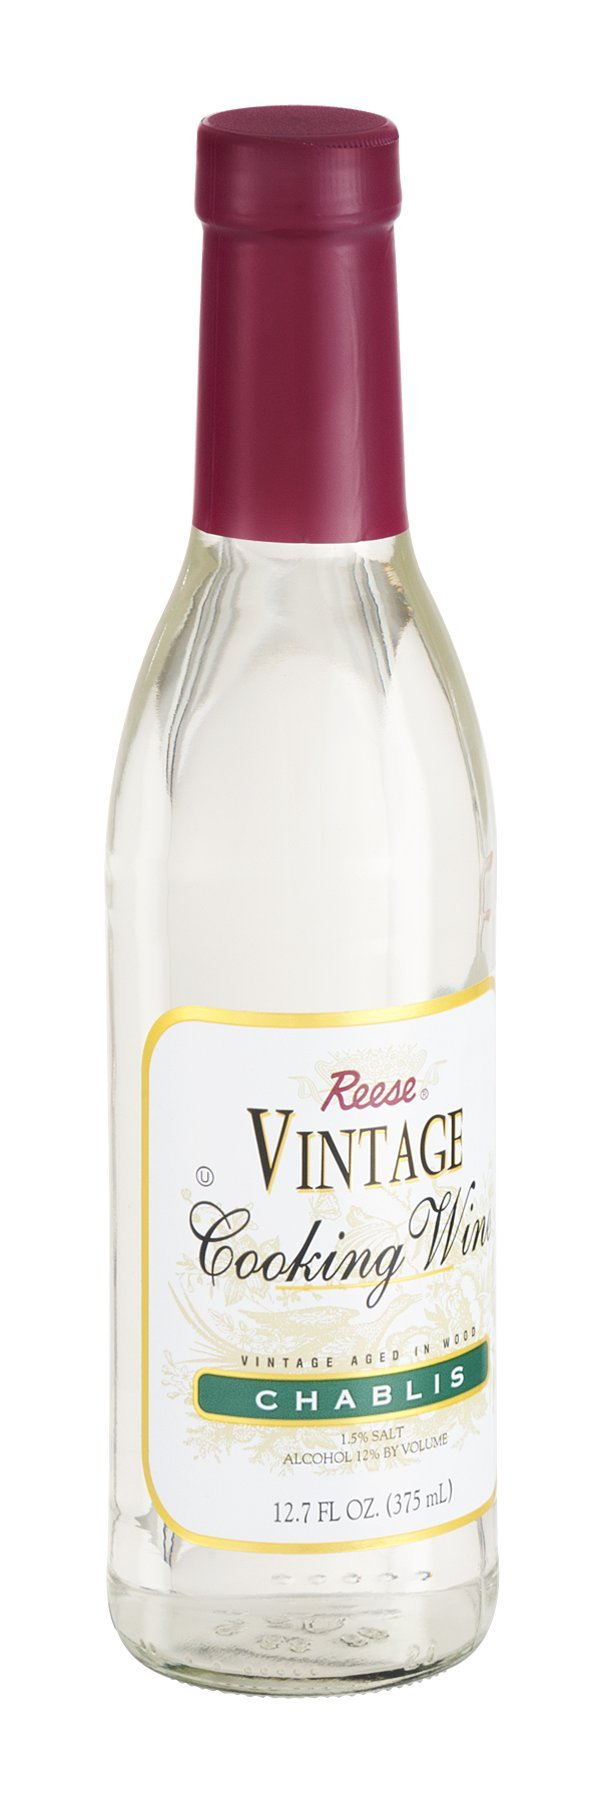 Reese Vintage Cooking Wine Chablis 12.7 OZ (Pack of 18)